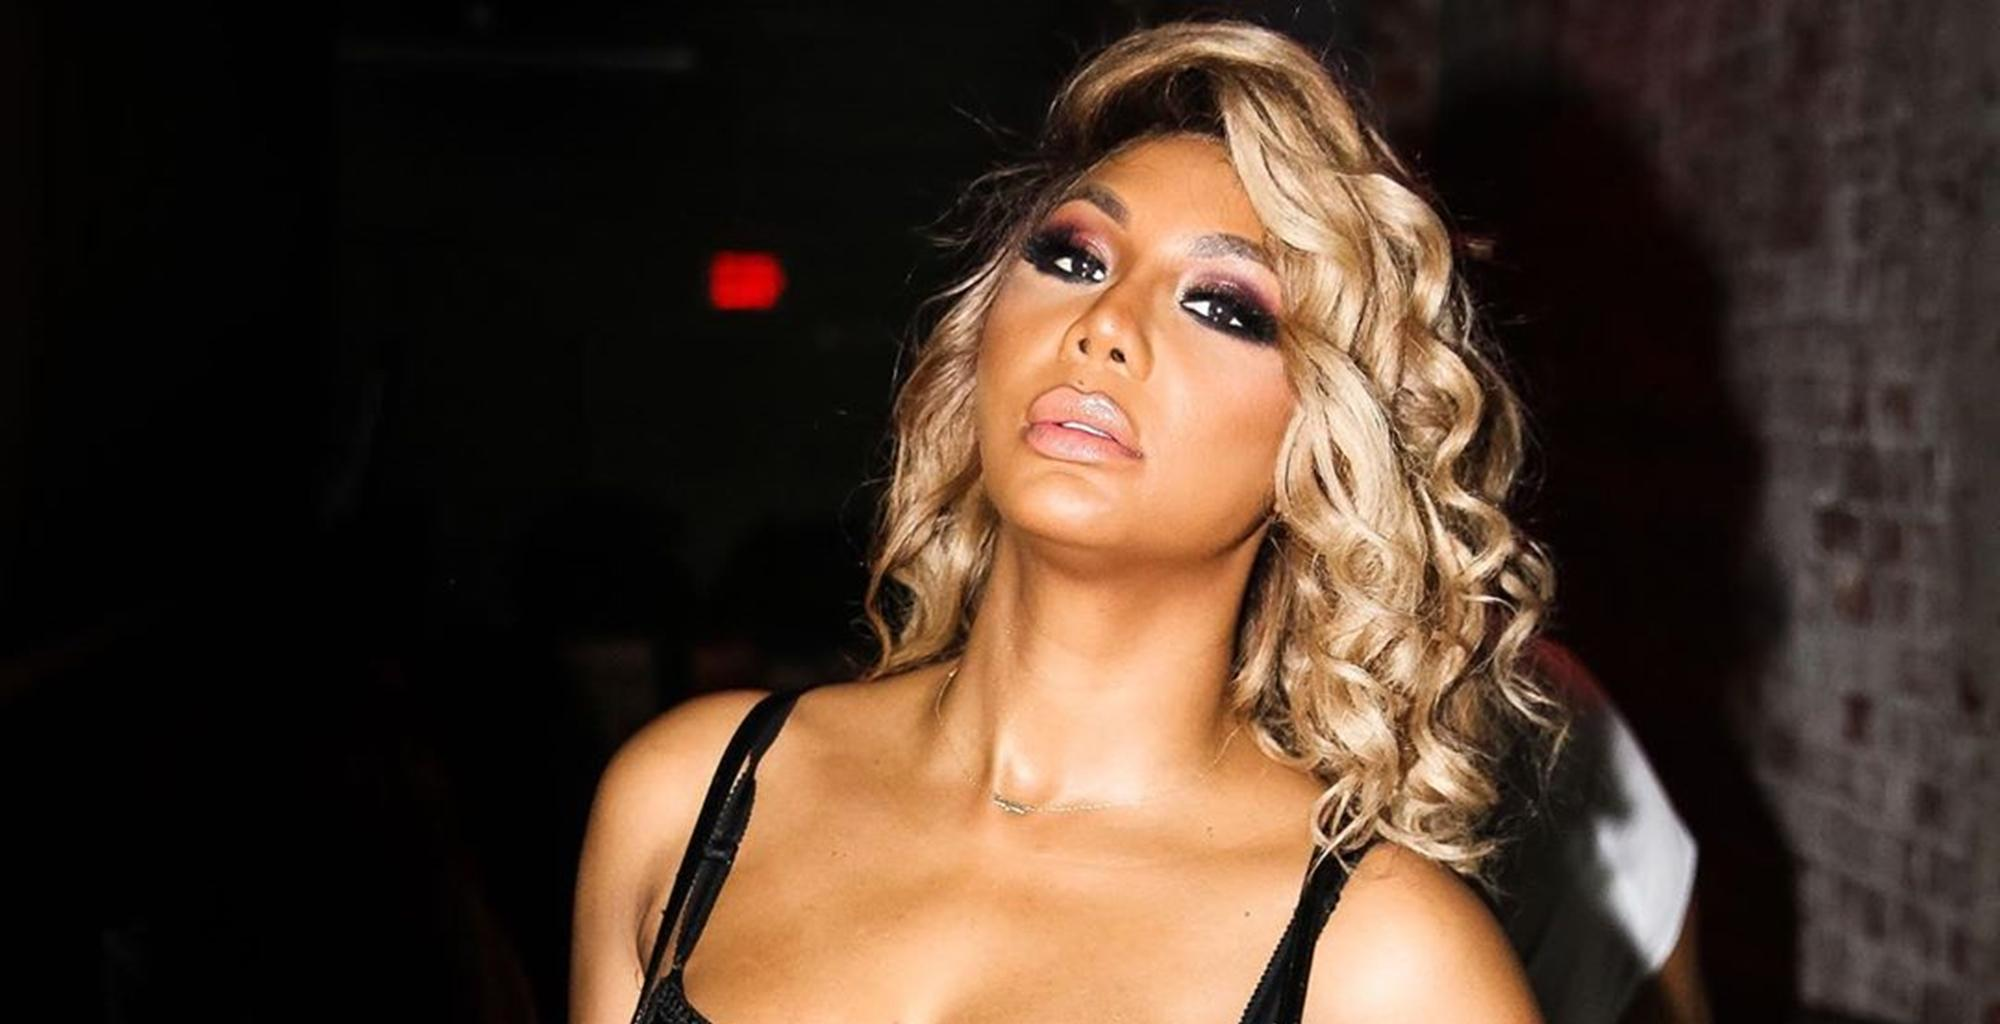 Tamar Braxton Leaves Little To The Imagination In New Photos As She Joins Kandi Burruss To Get More Coins -- The Singers Have Come A Long Way